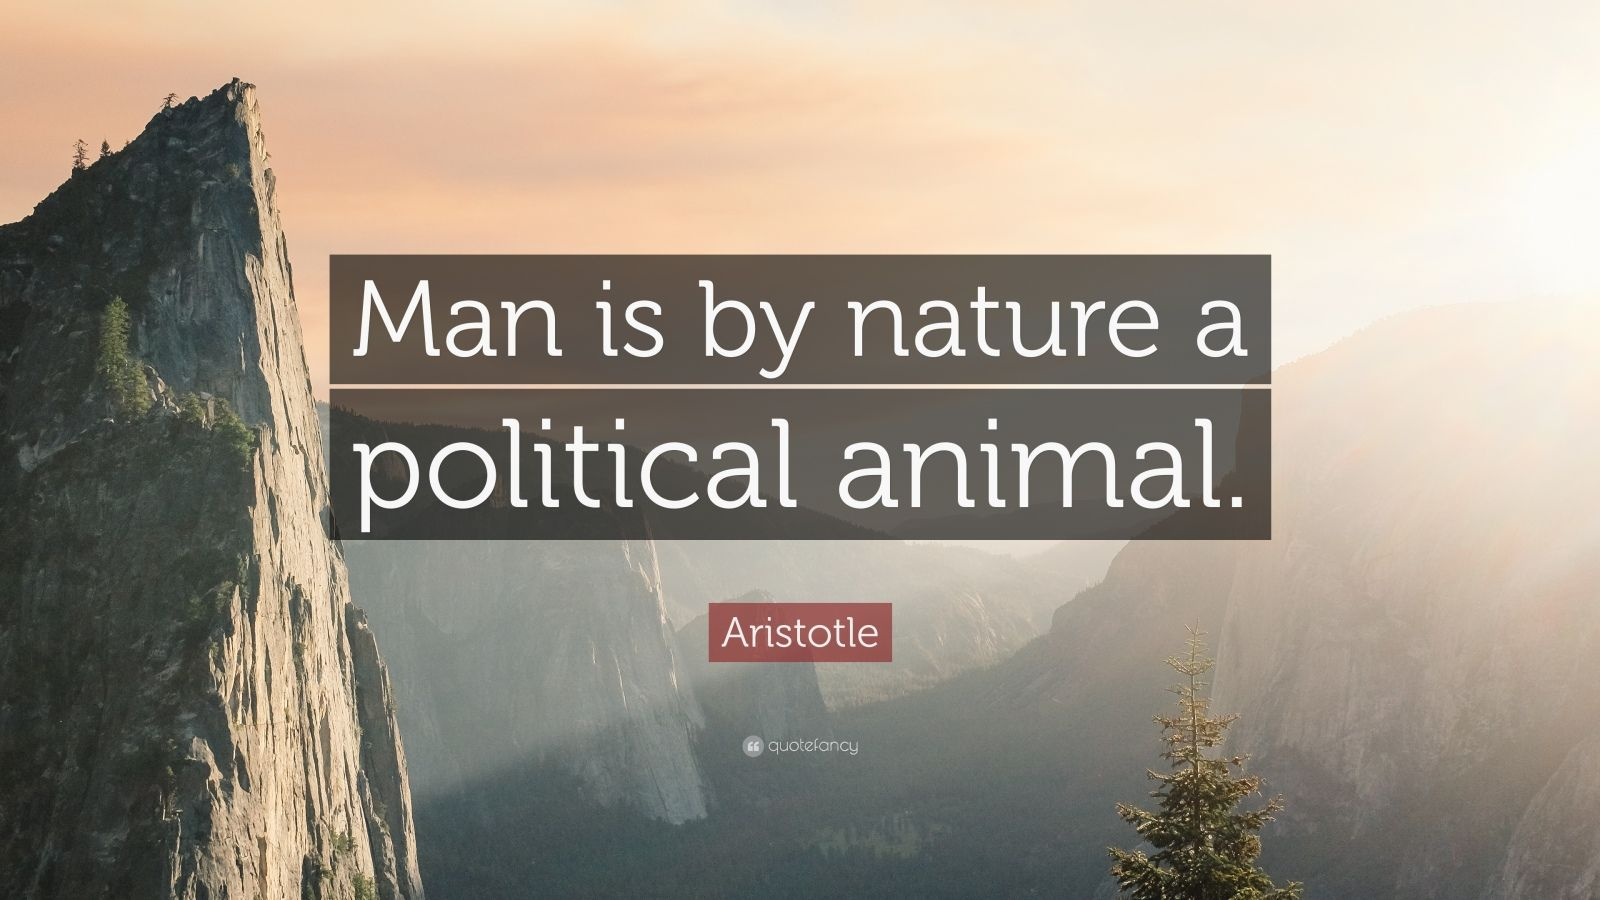 the nature of man as a political animal